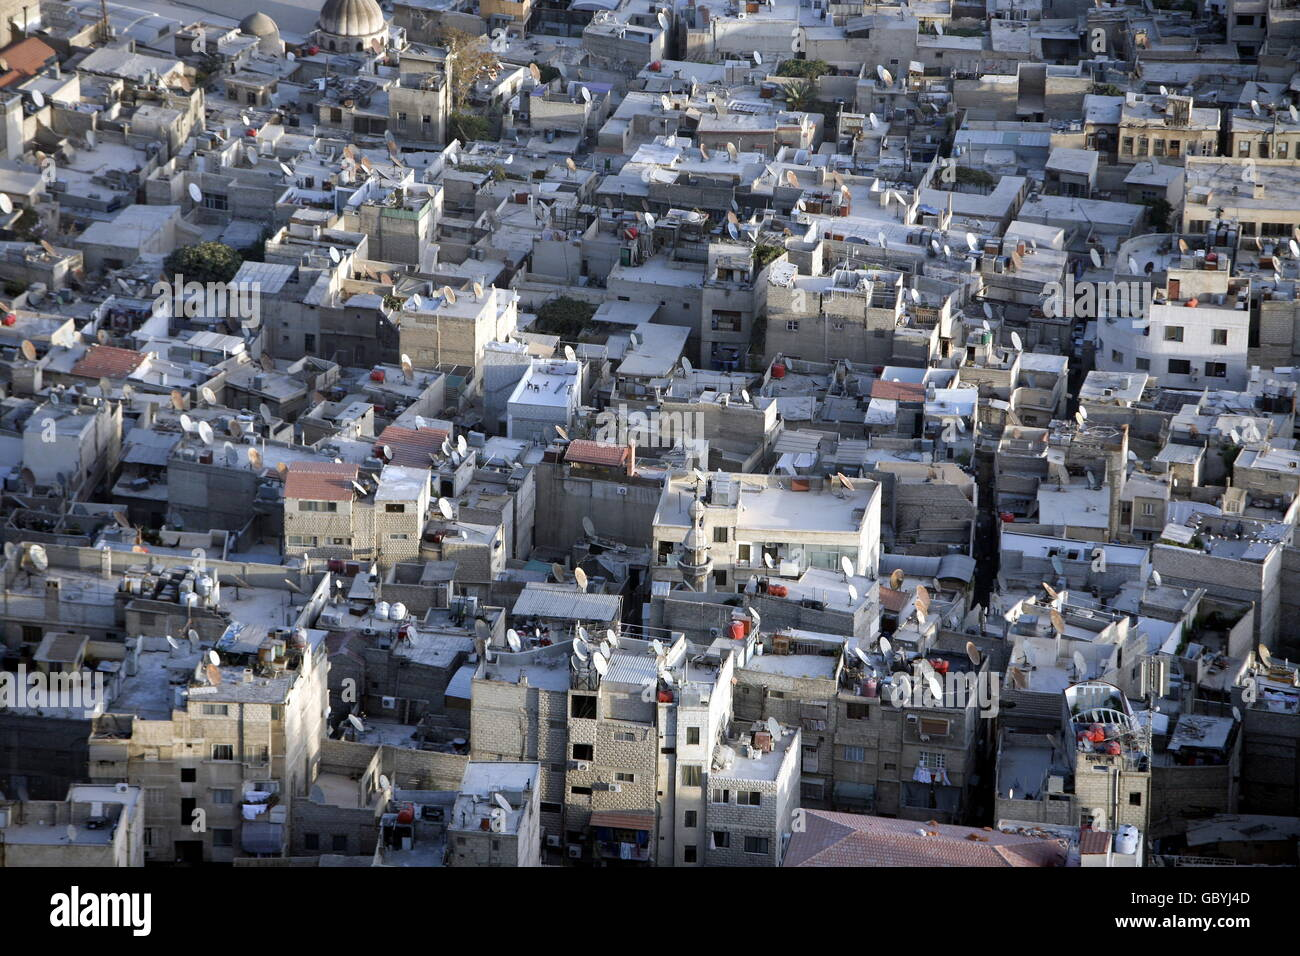 the city centre of Damaskus before the war in Syria in the middle east - Stock Image